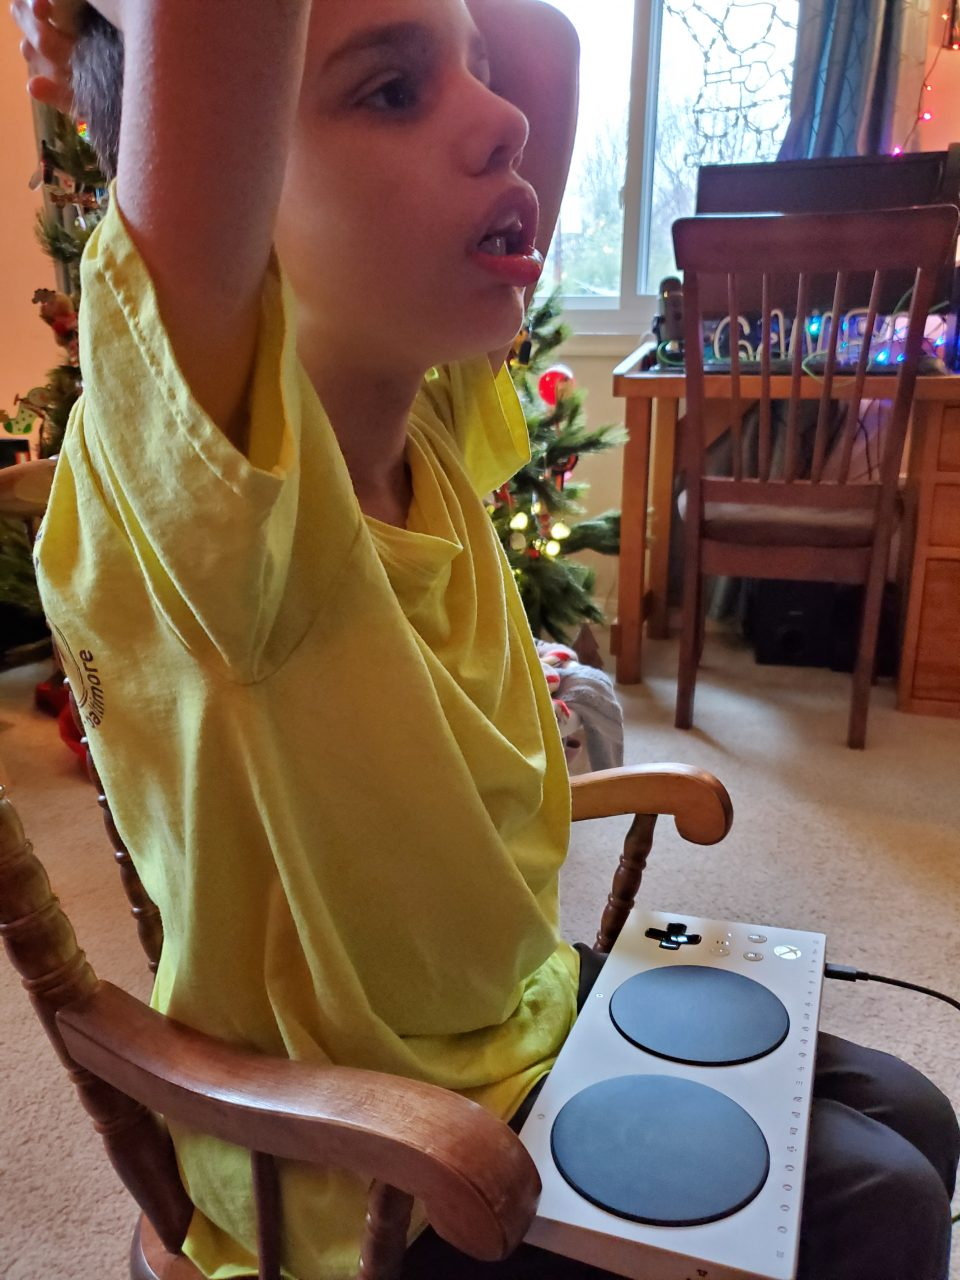 My son playing on the Xbox Adaptive Controller